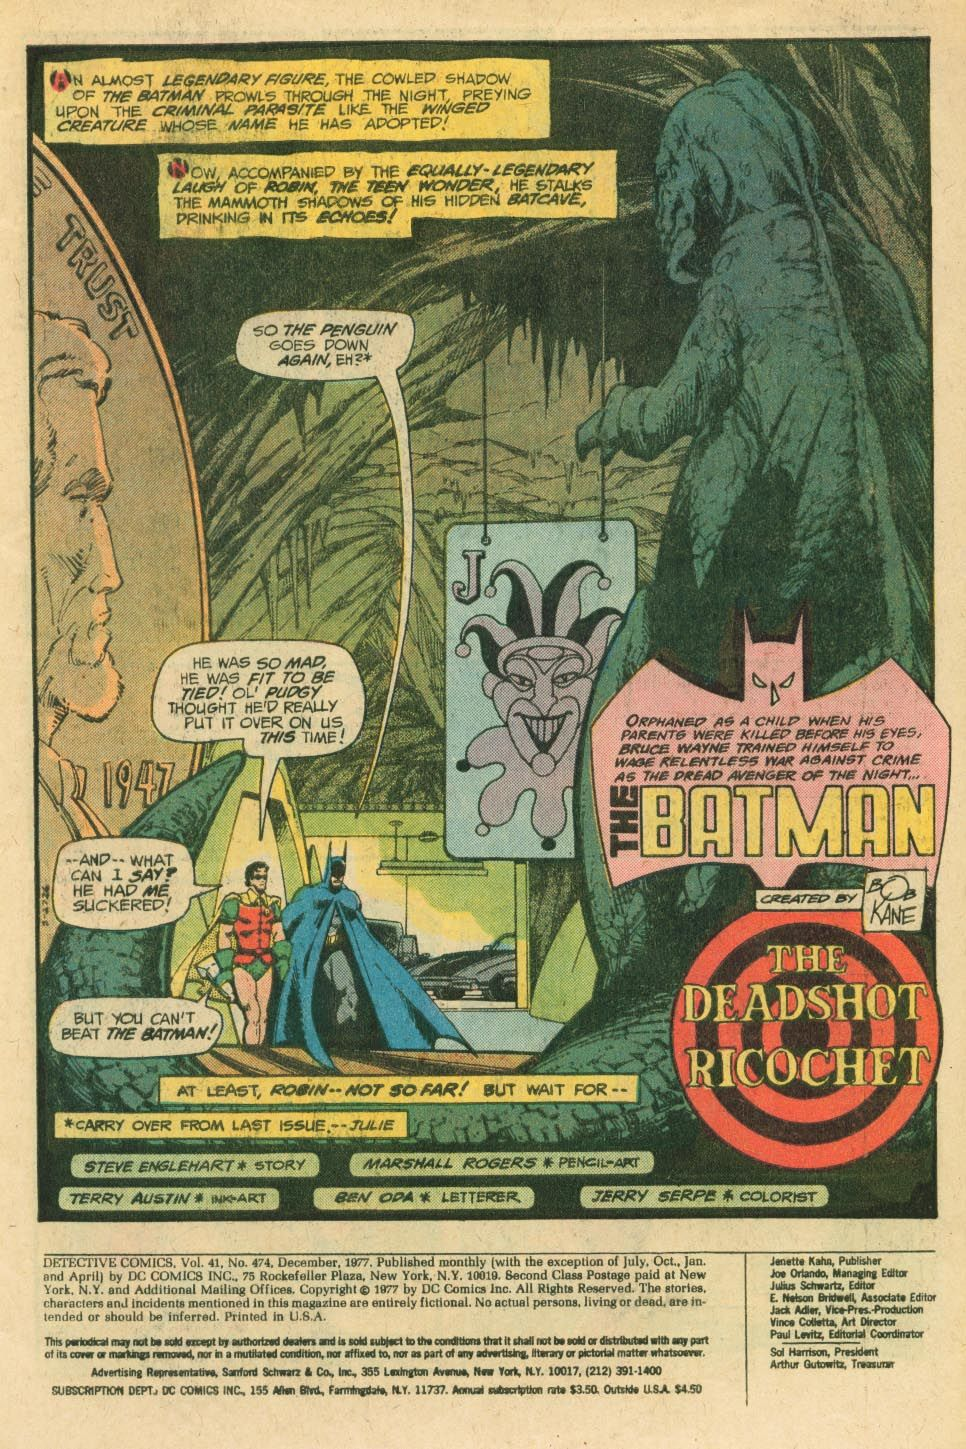 detective incorporated marshall rogers | Making a Splash: Marshall Rogers' Batman in Detective Comics